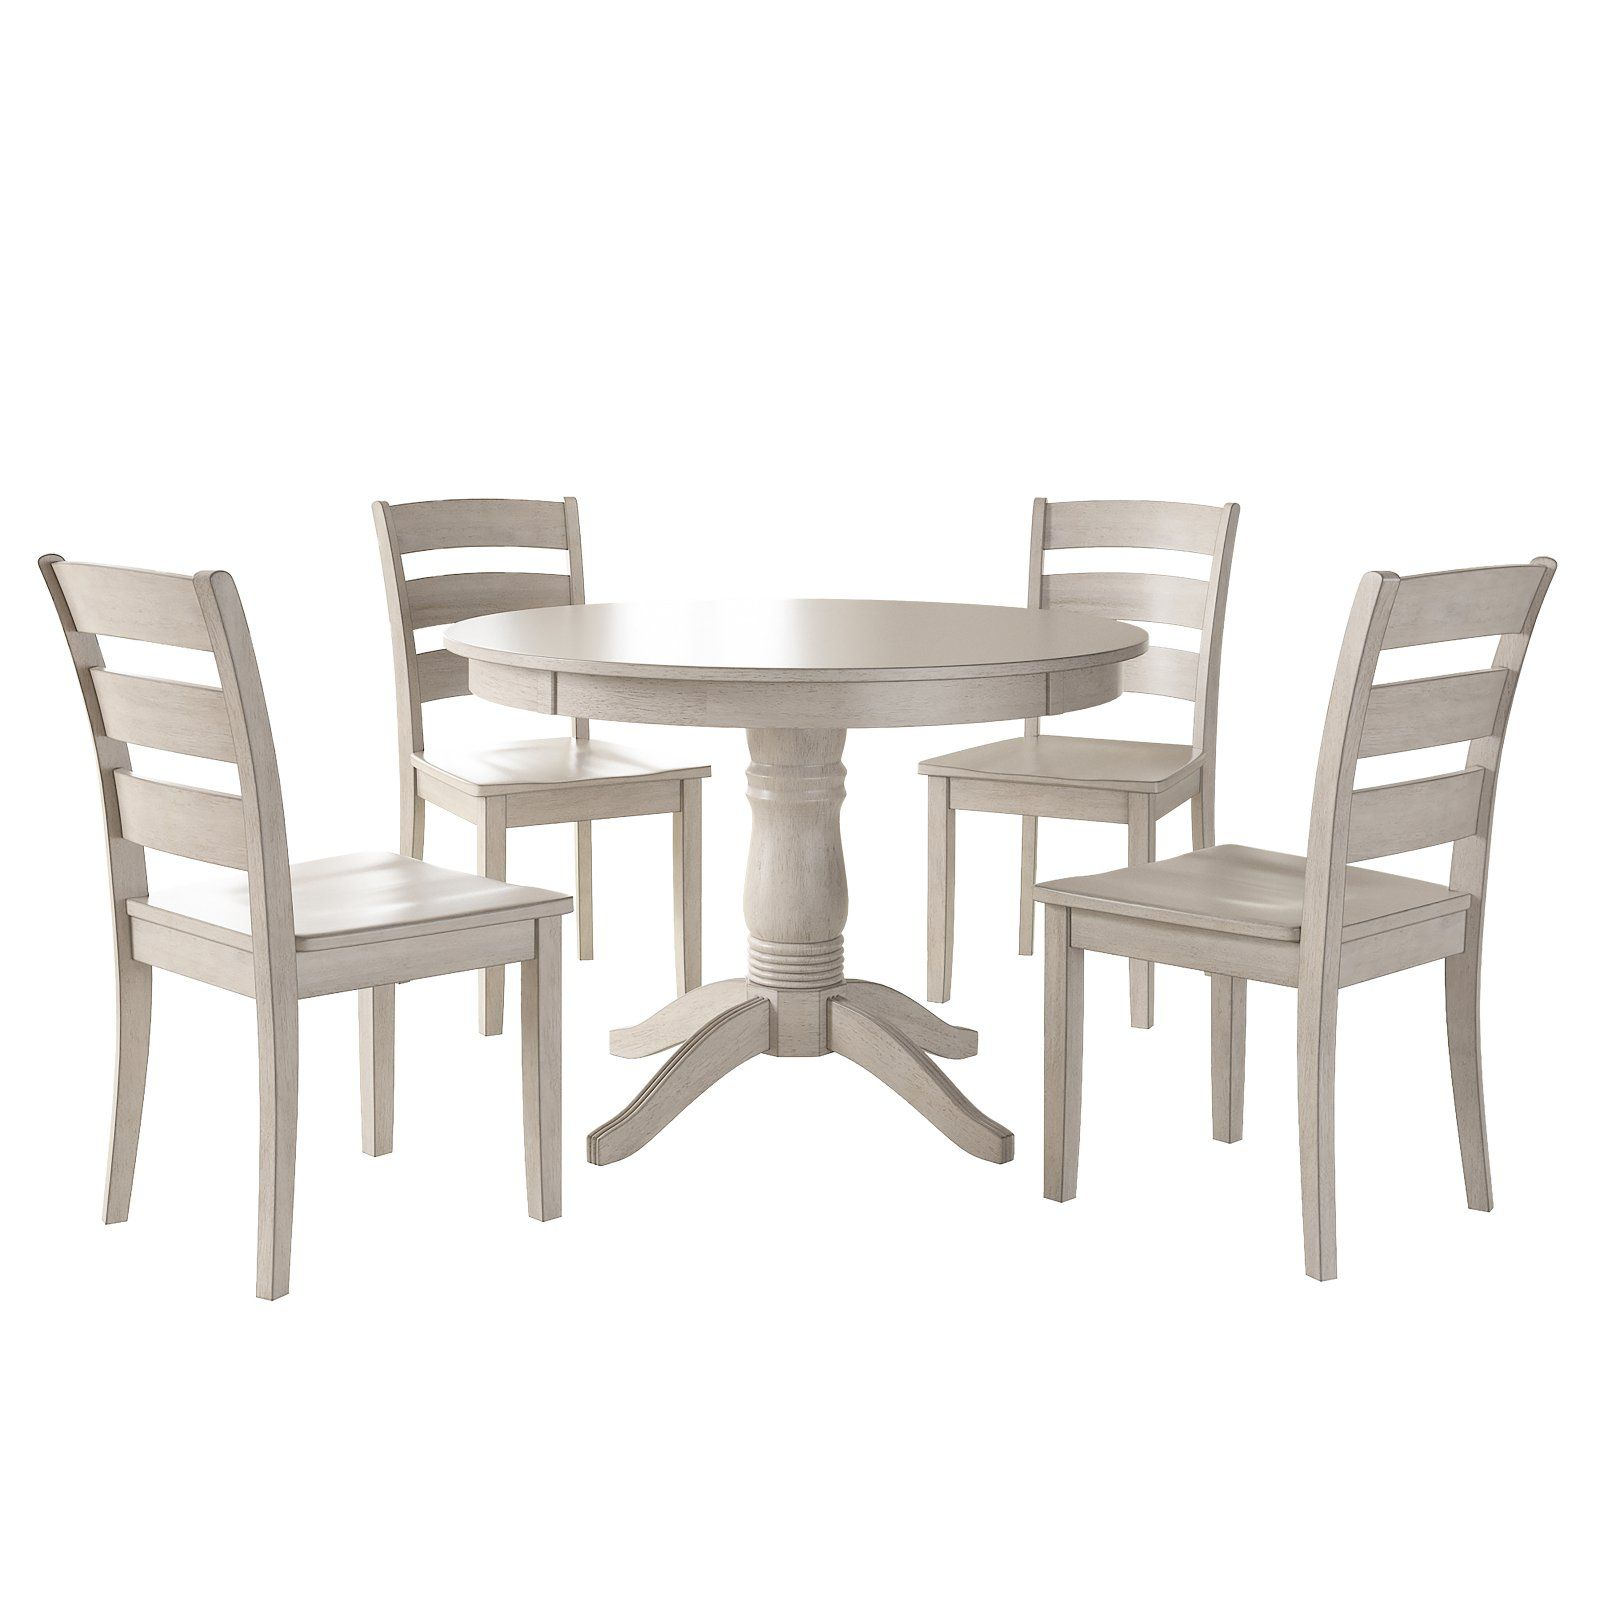 Weston Home Lexington 5 Piece Round Dining Table Set With Ladder Back Chairs Antique White Round Dining Table Sets